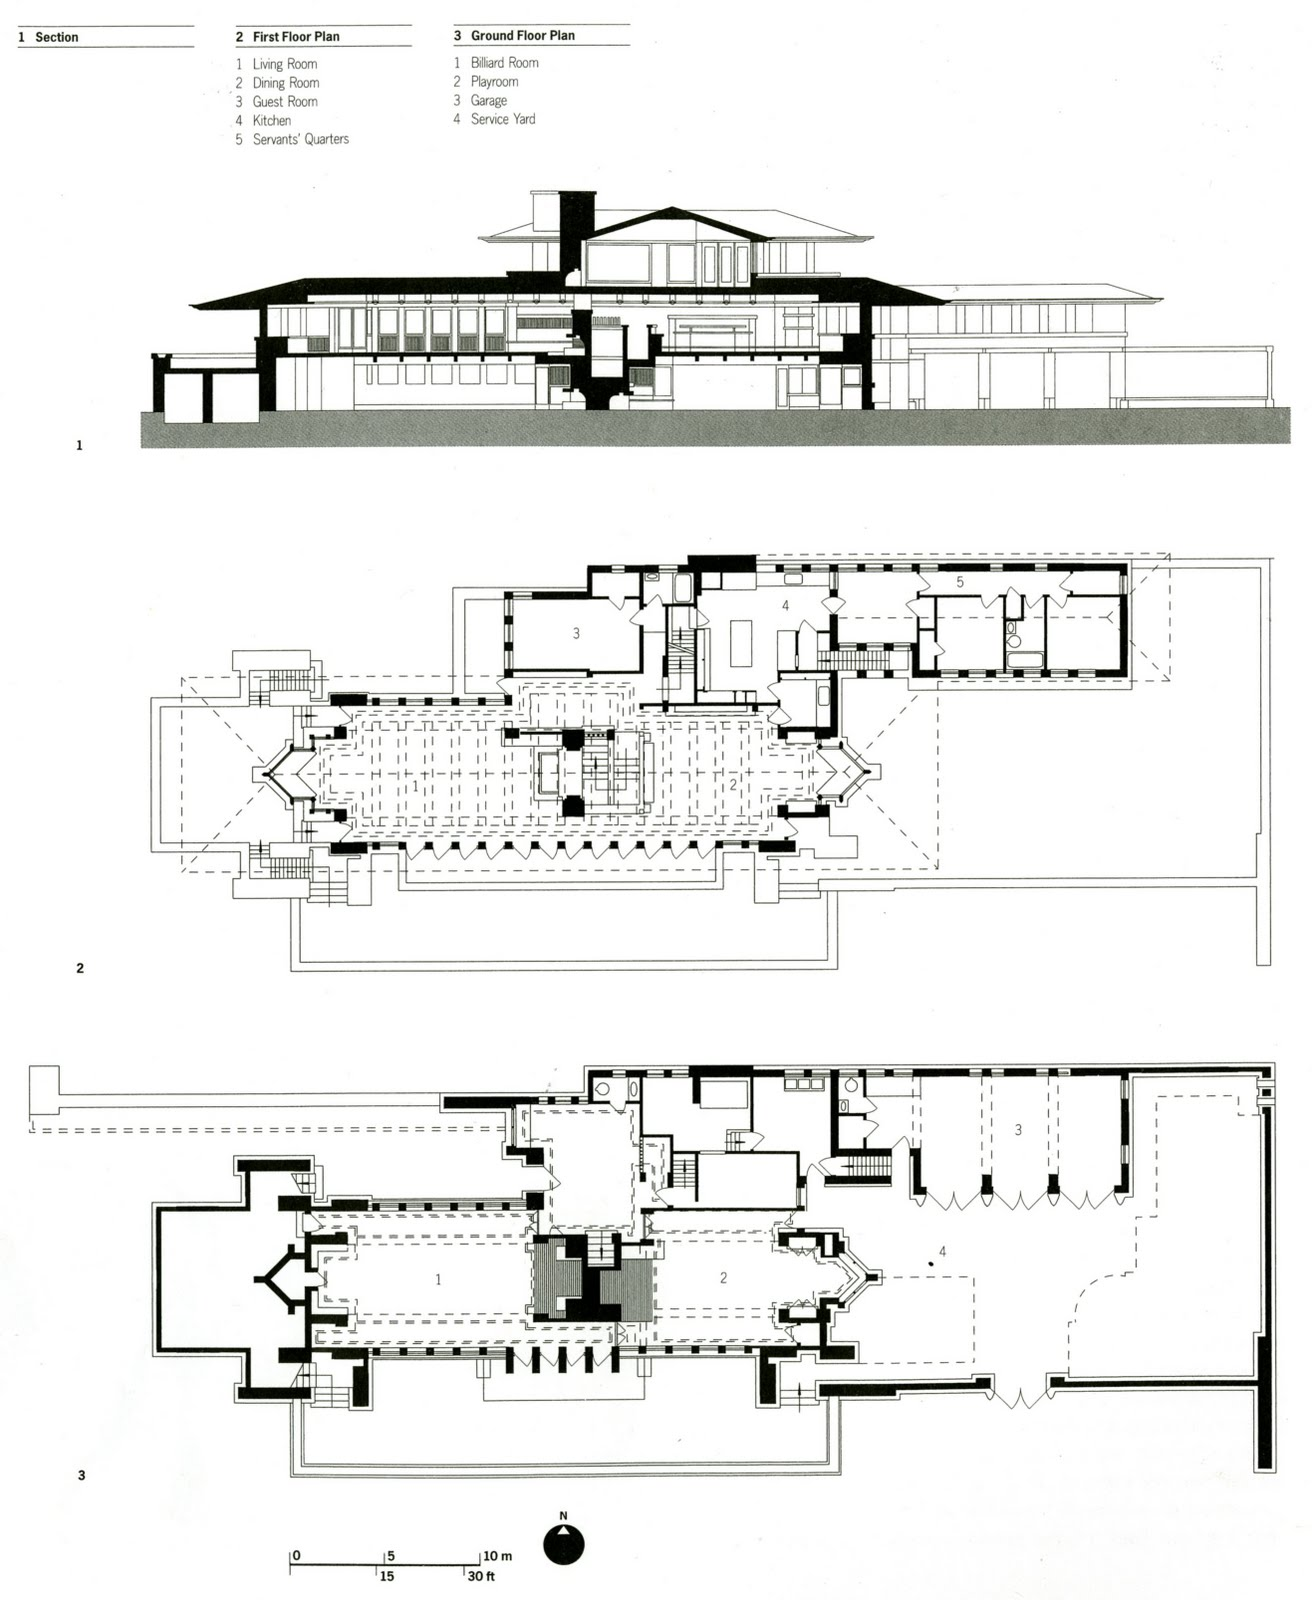 Usonian miller house plan by flw besides Frfalling Waters in addition 30505 together with Architectural Planning besides Falling Water Plan. on frank lloyd wright home plans